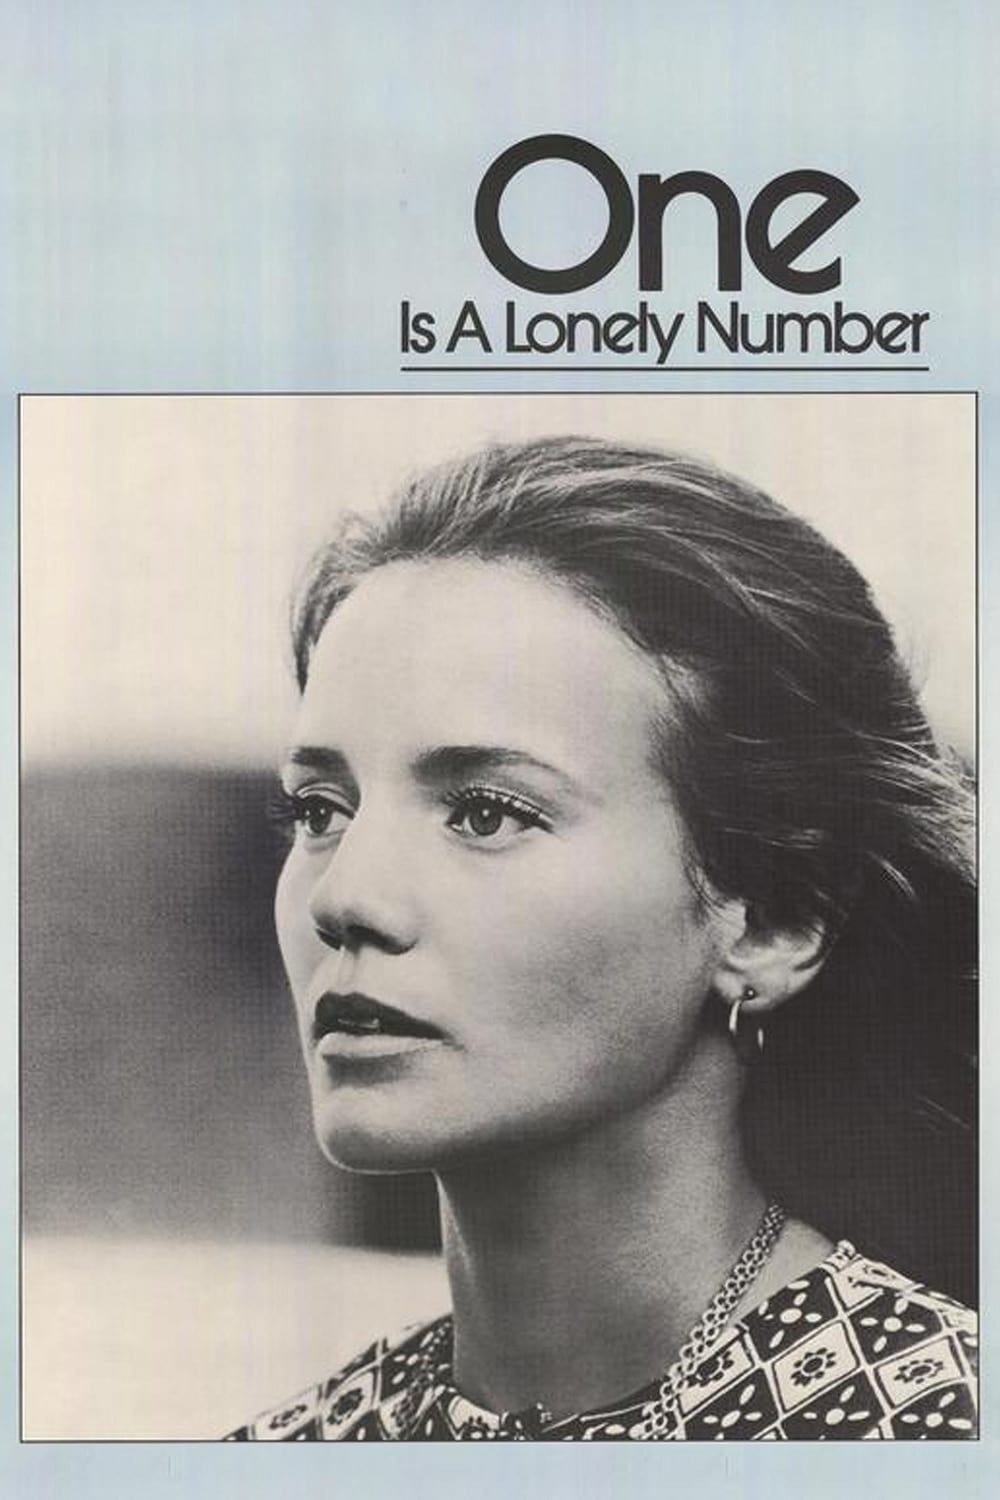 One Is a Lonely Number (1972)